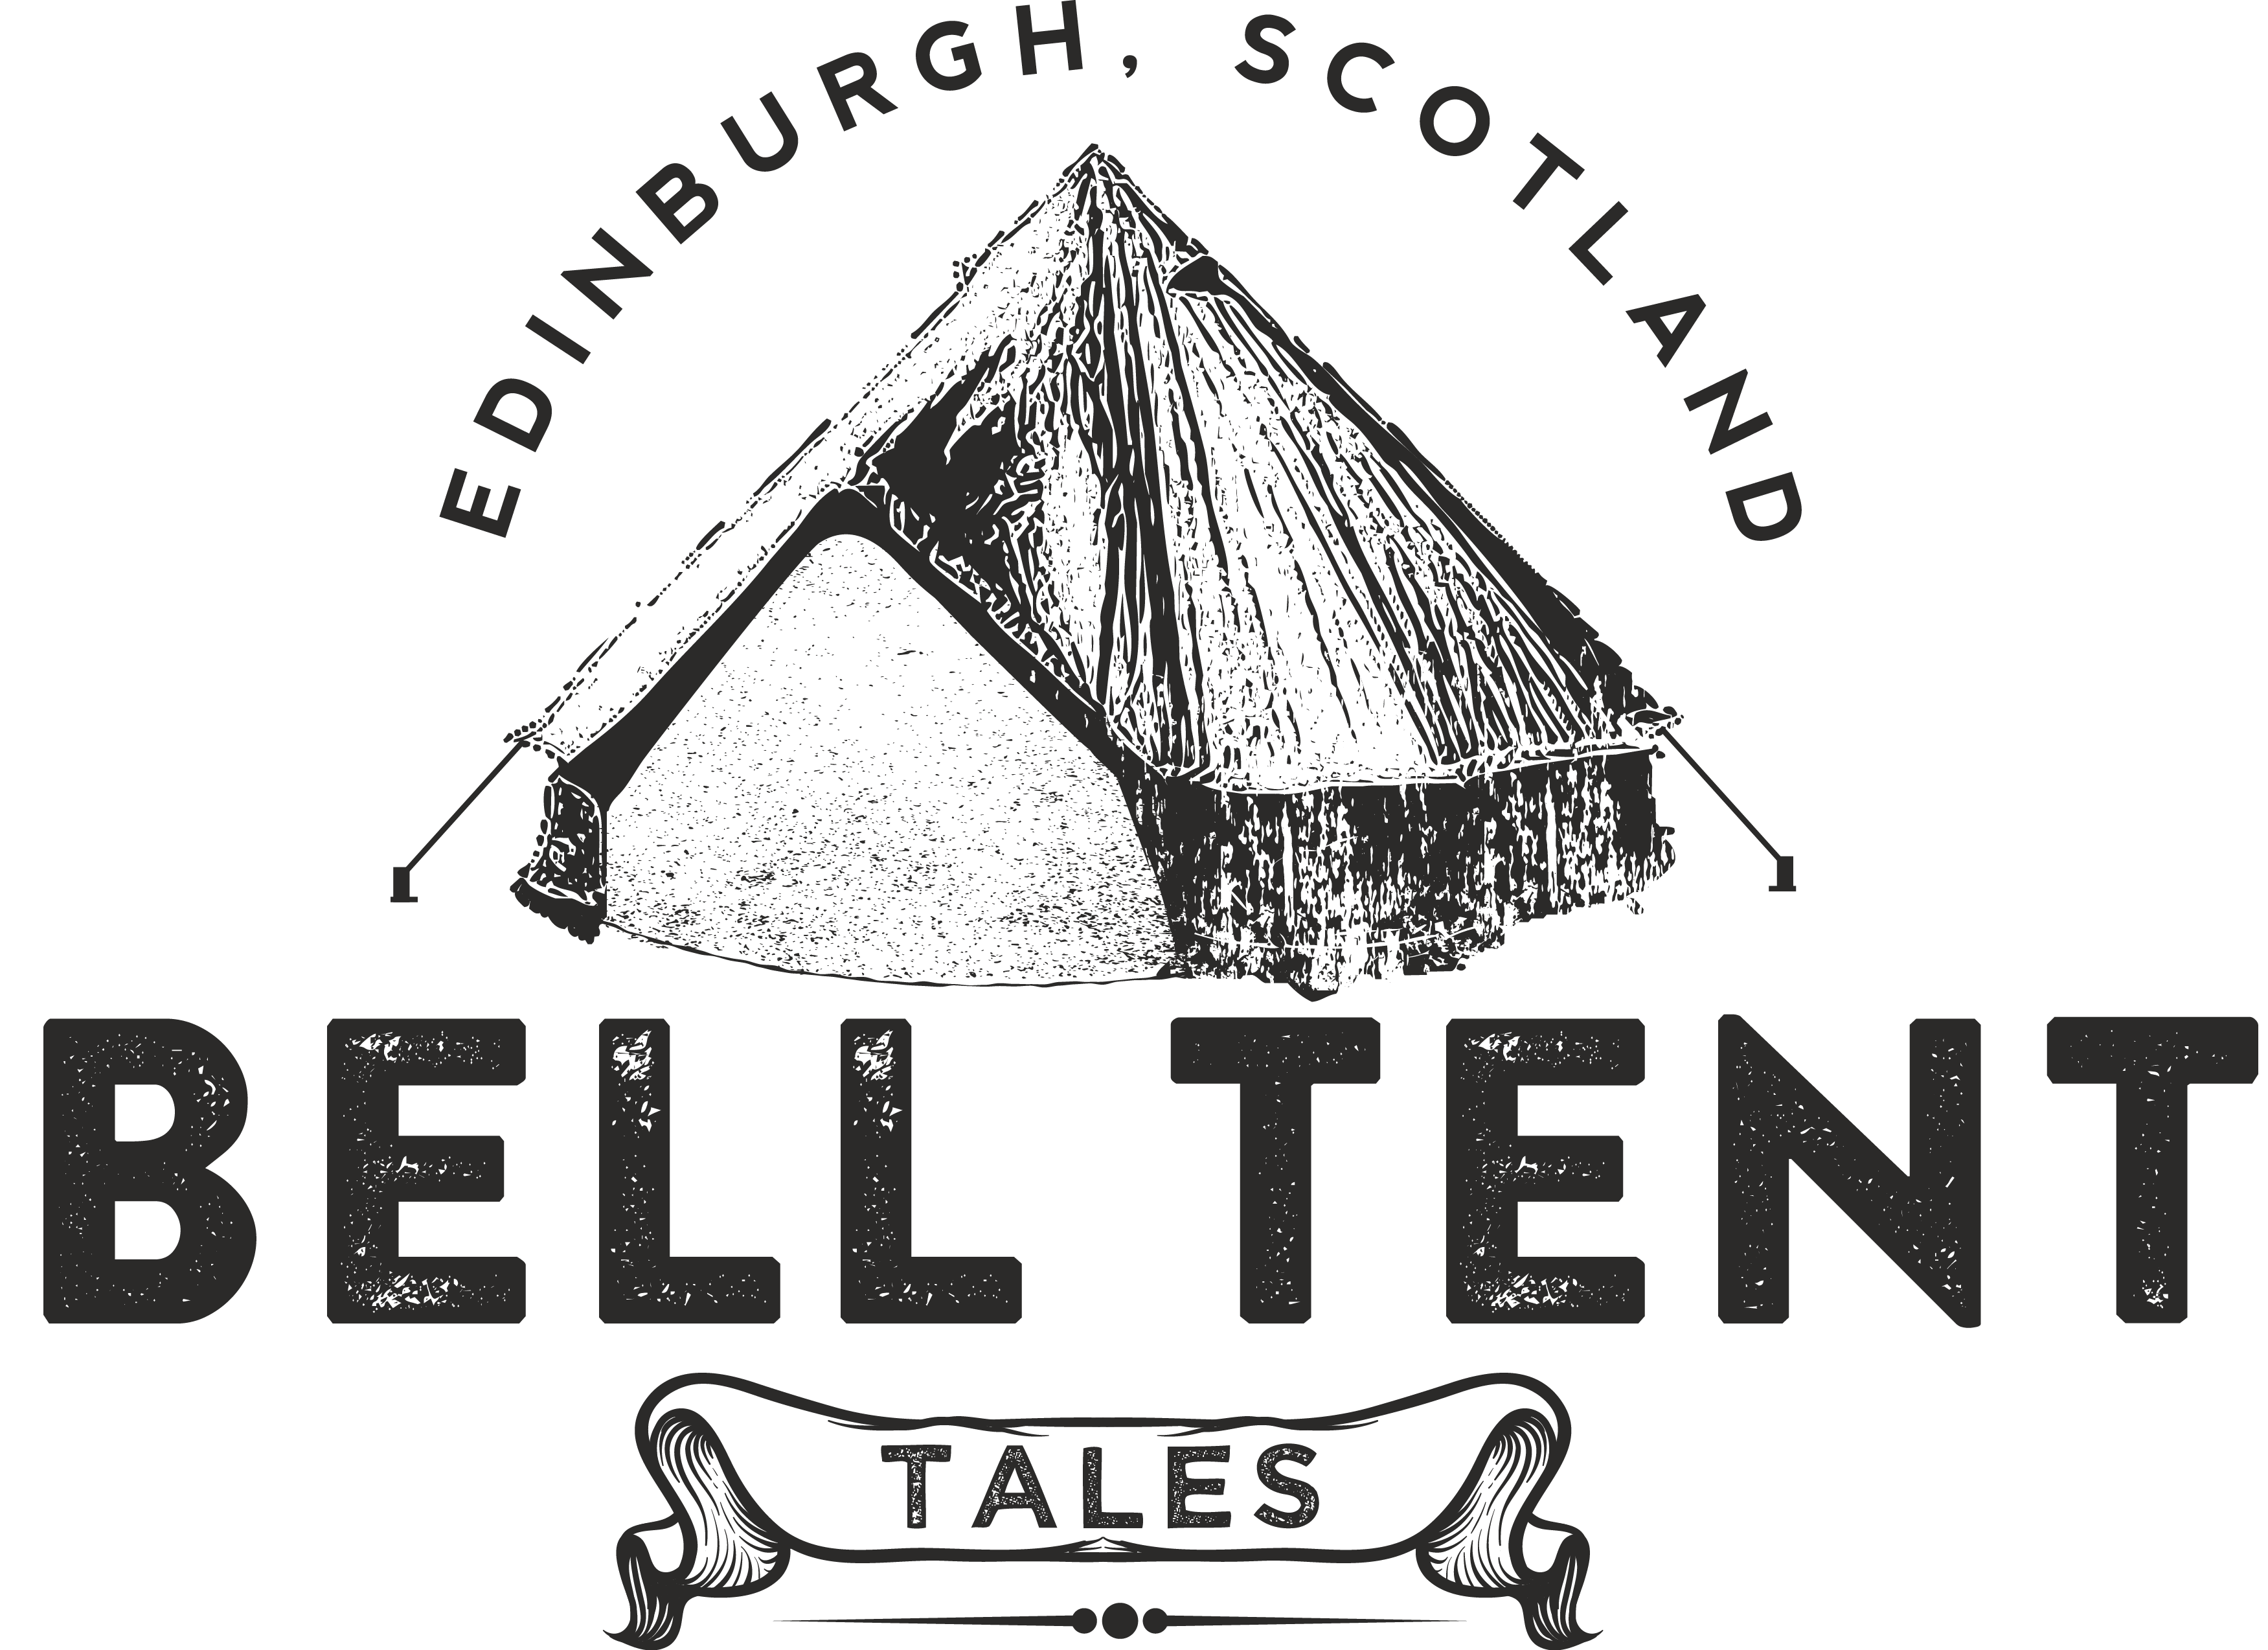 Bell Tent Tales